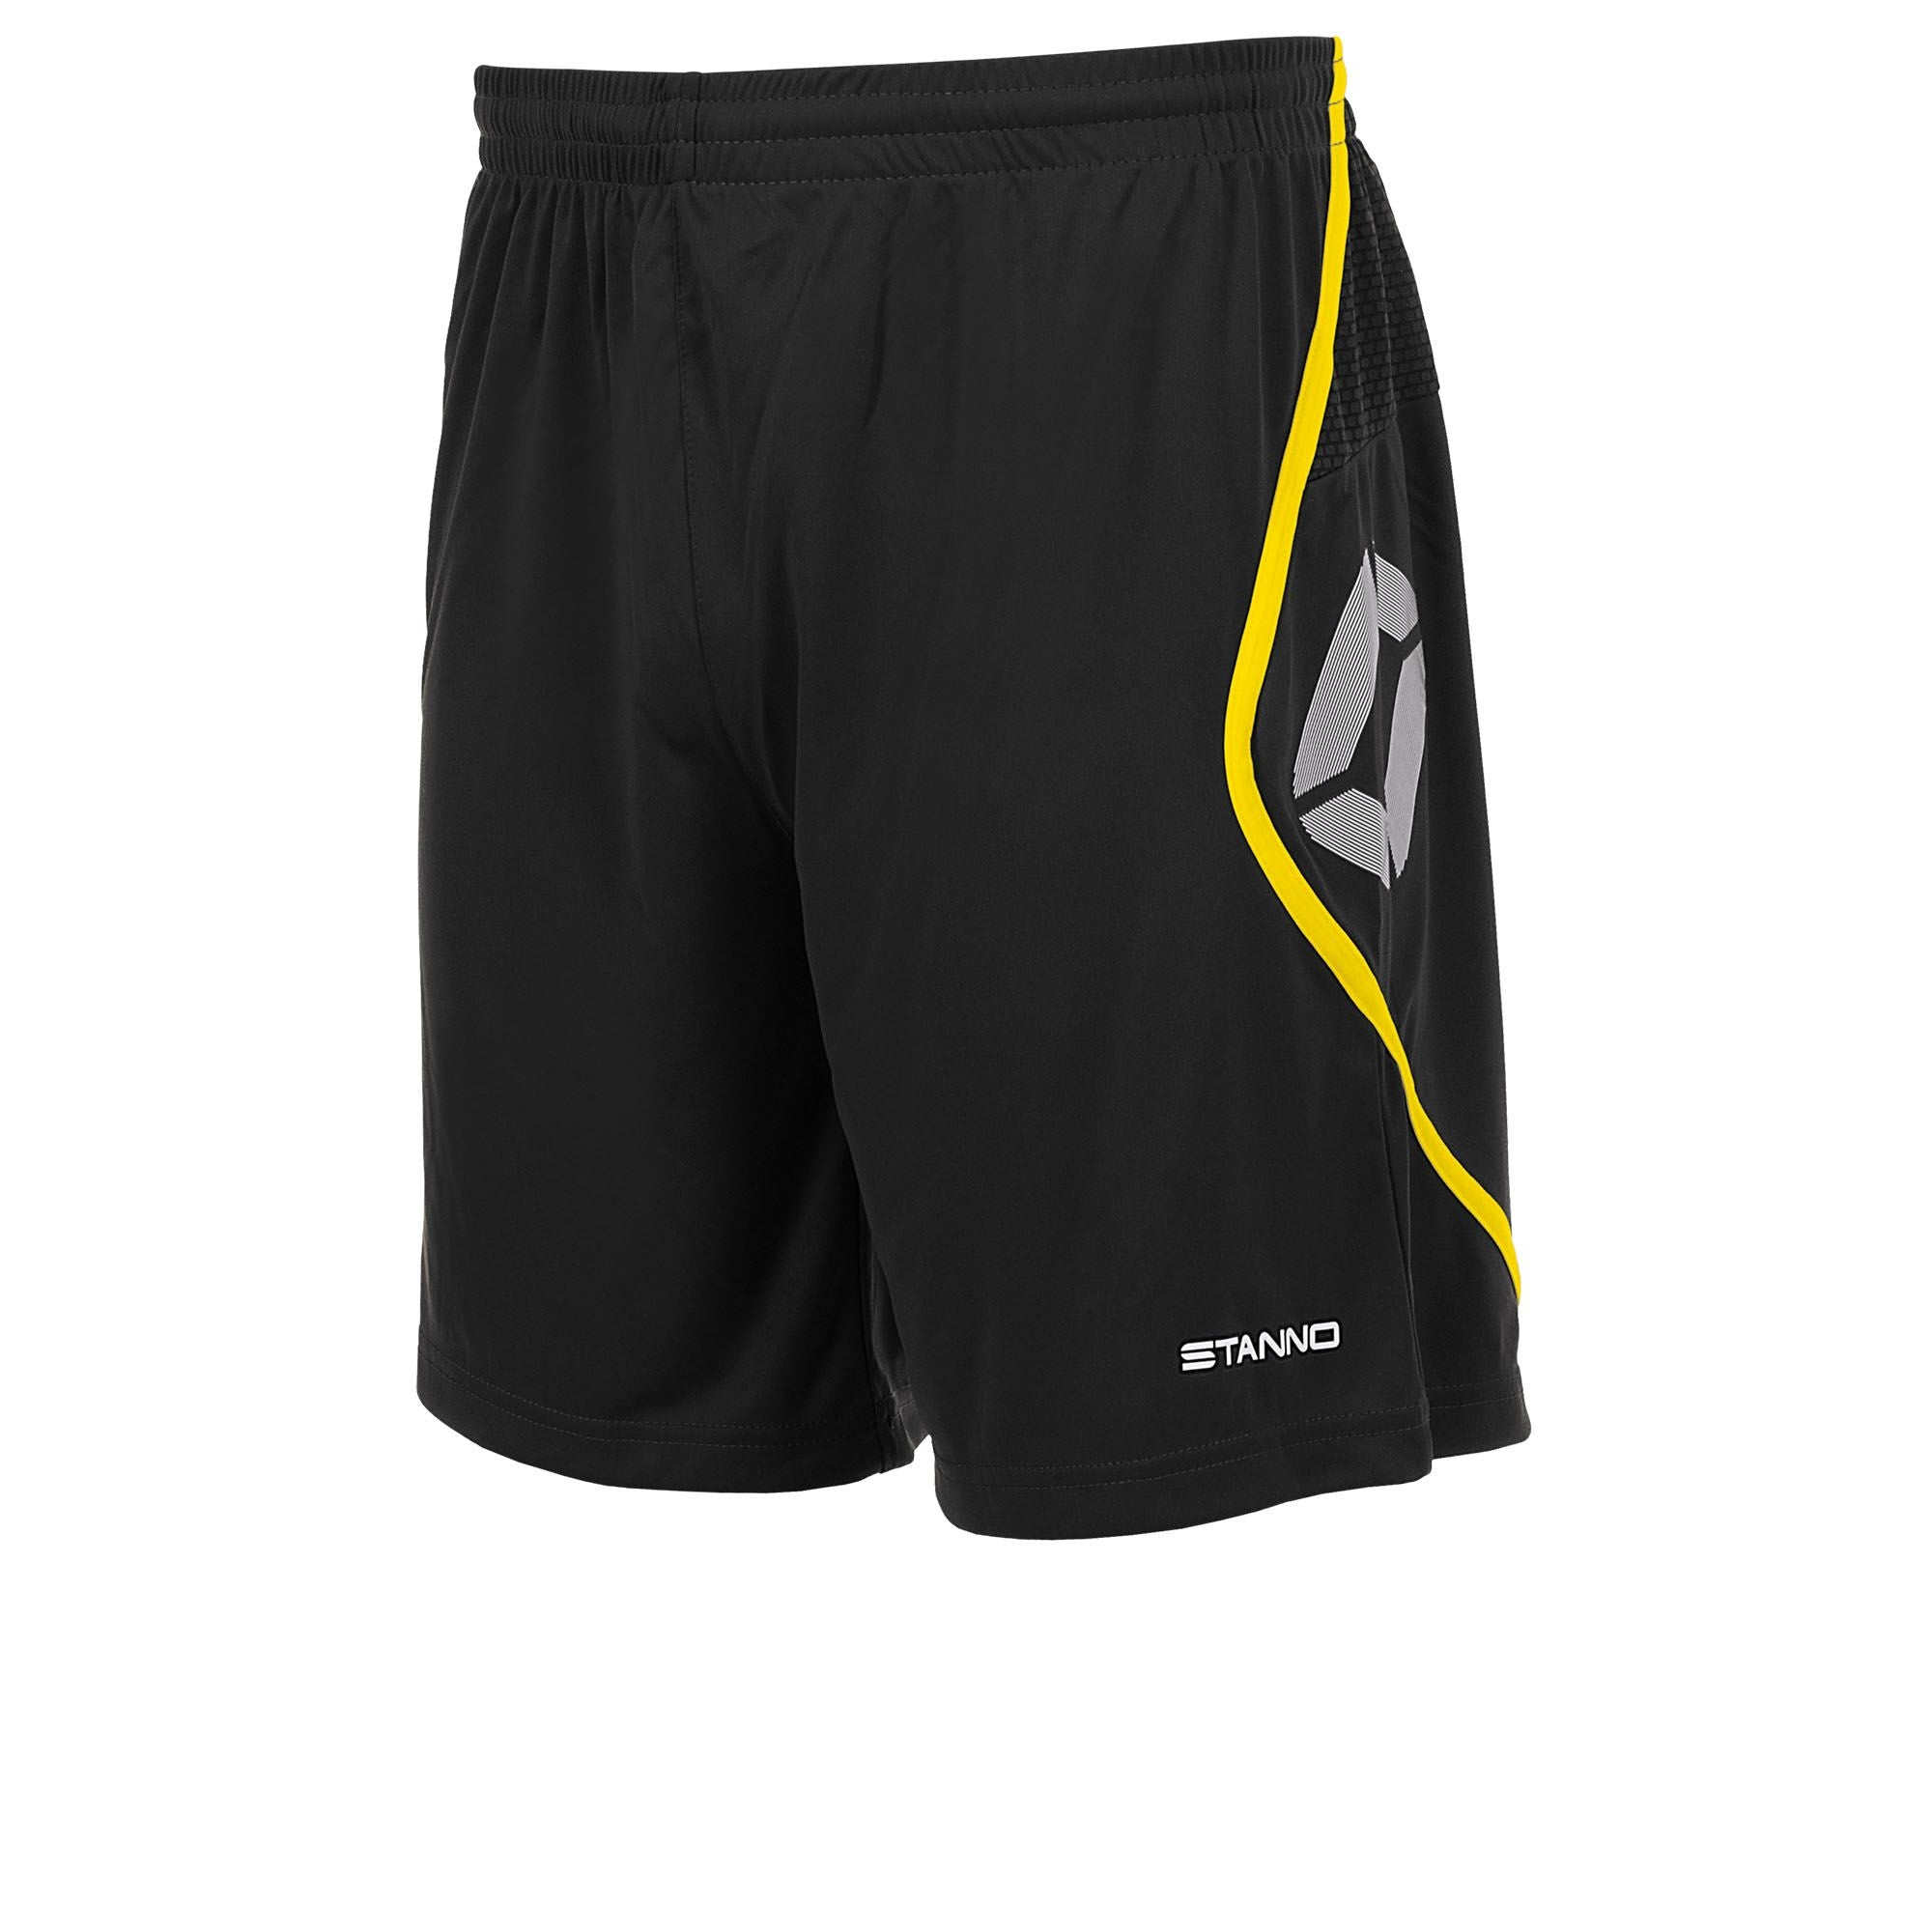 Stanno Pisa Shorts - Black/Yellow